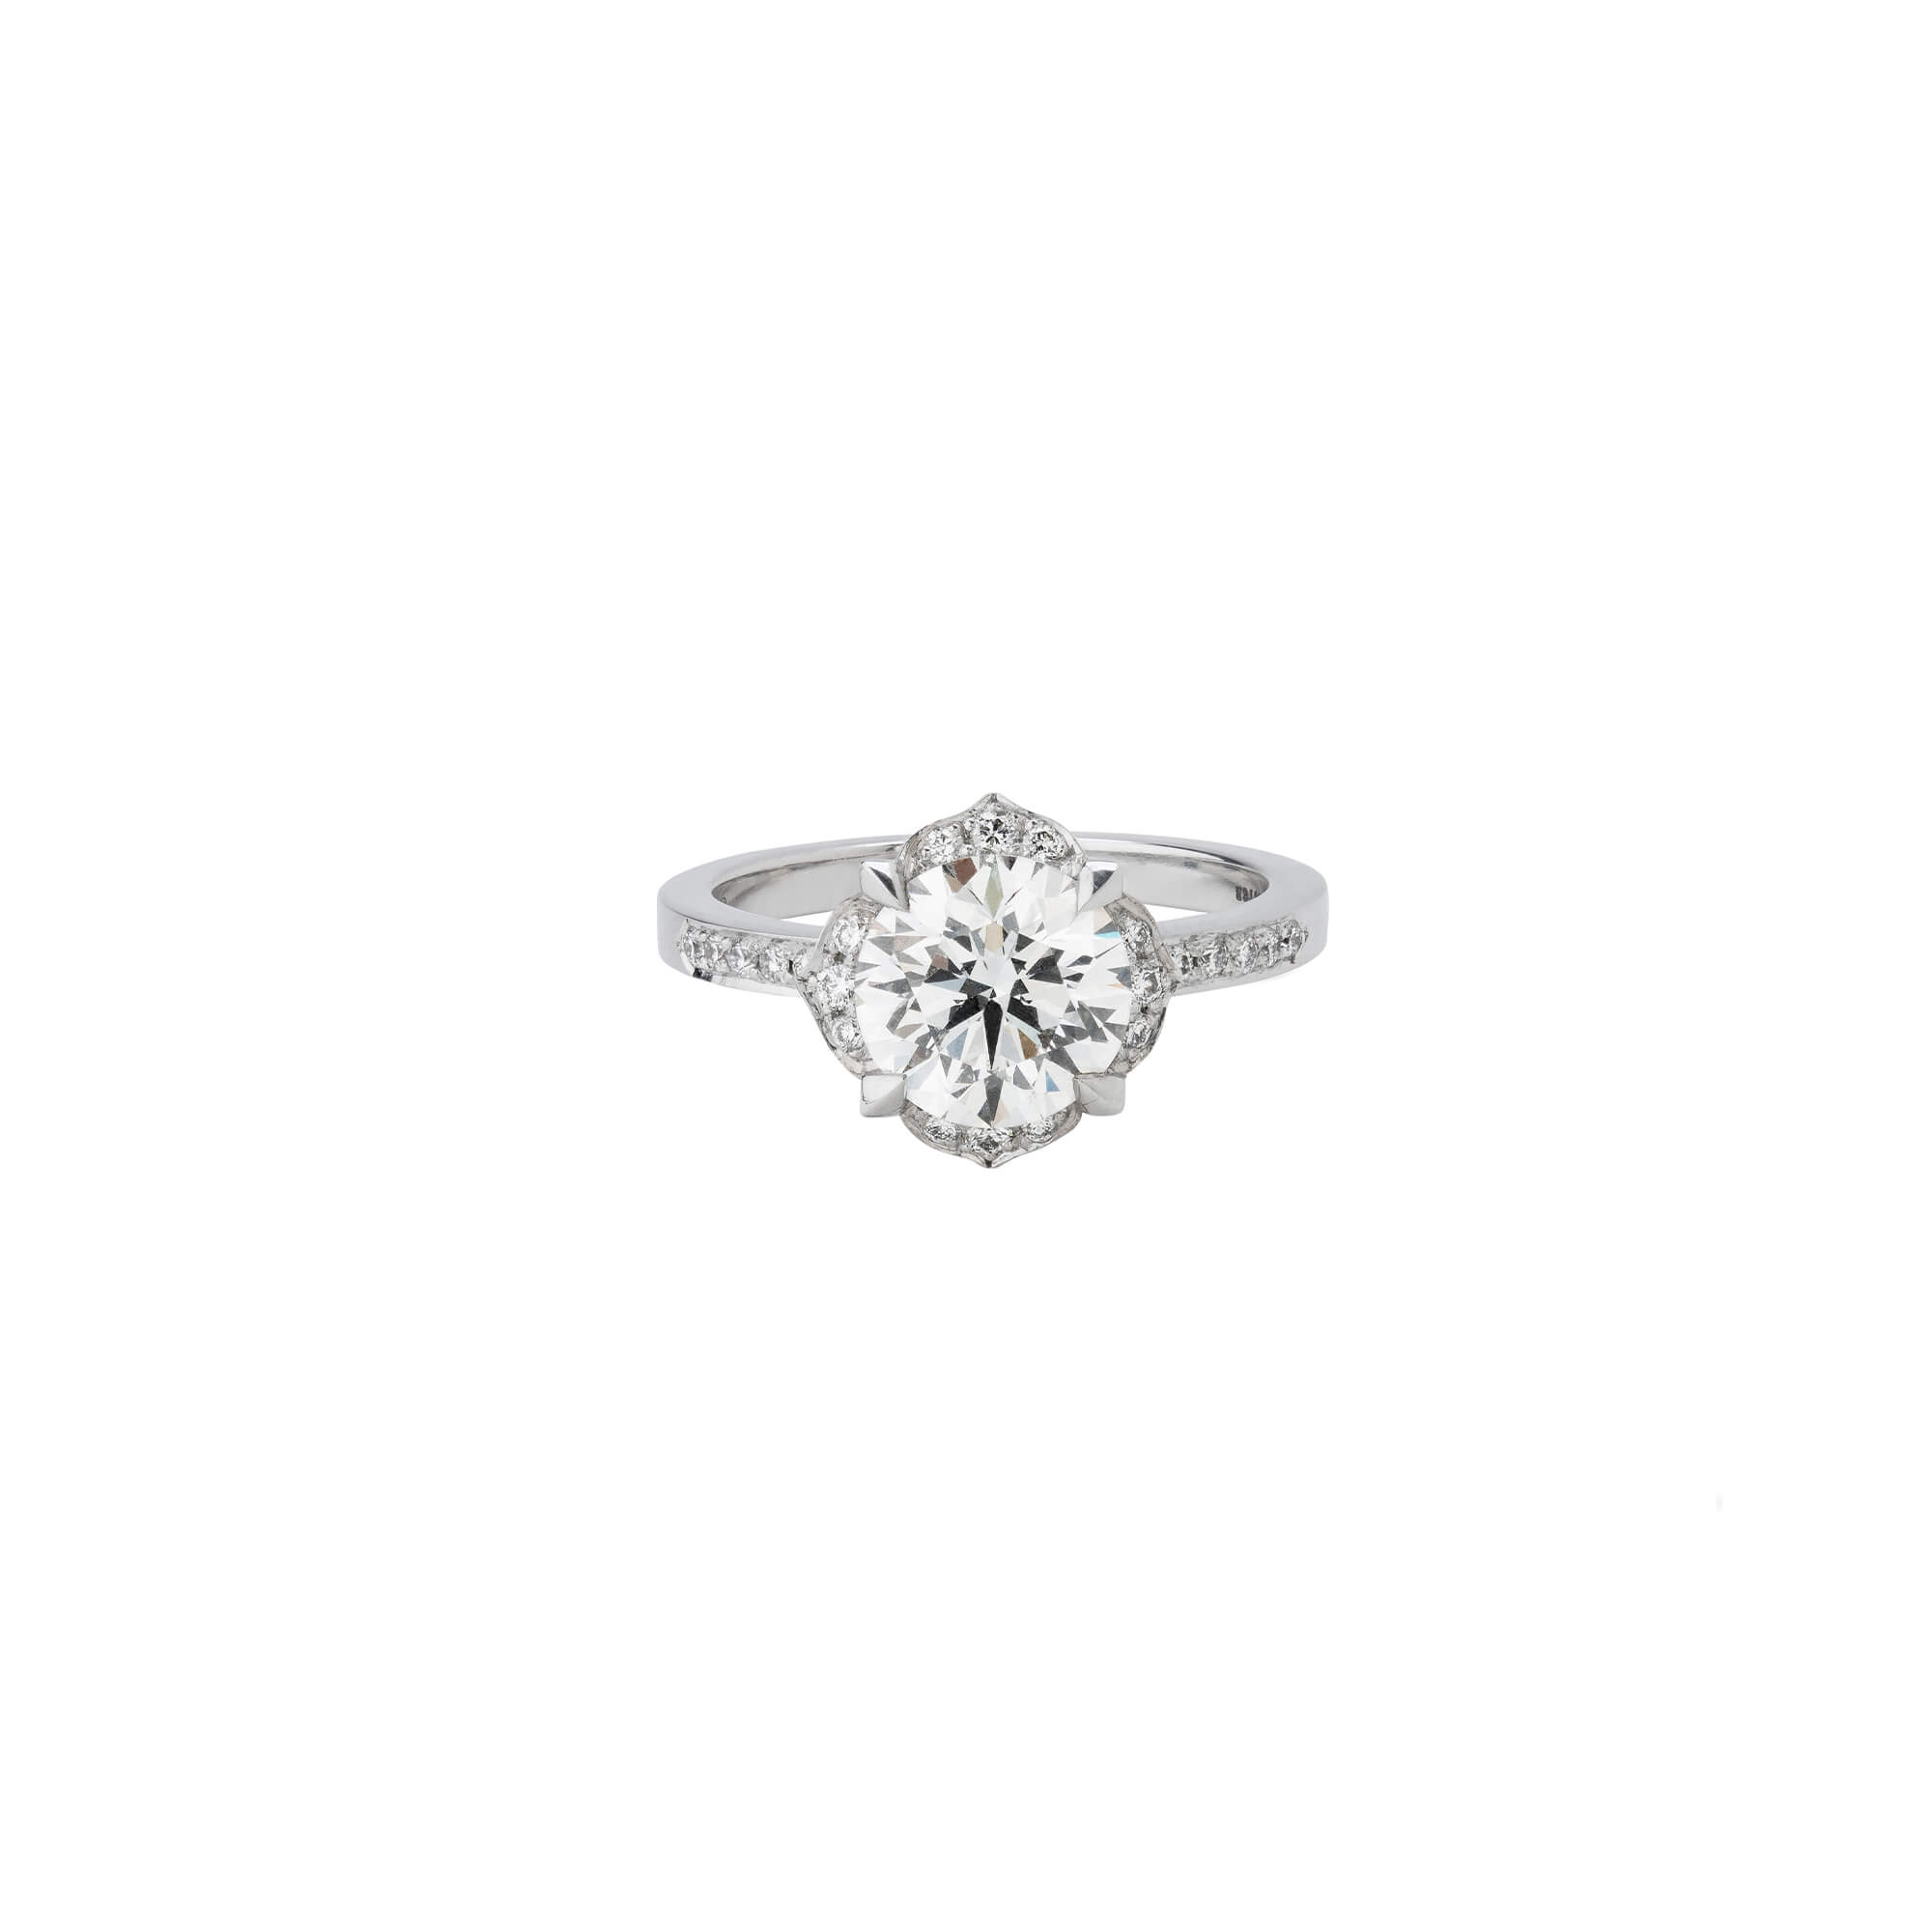 Heritage White Gold Diamond Engagement Ring | Stephen Webster